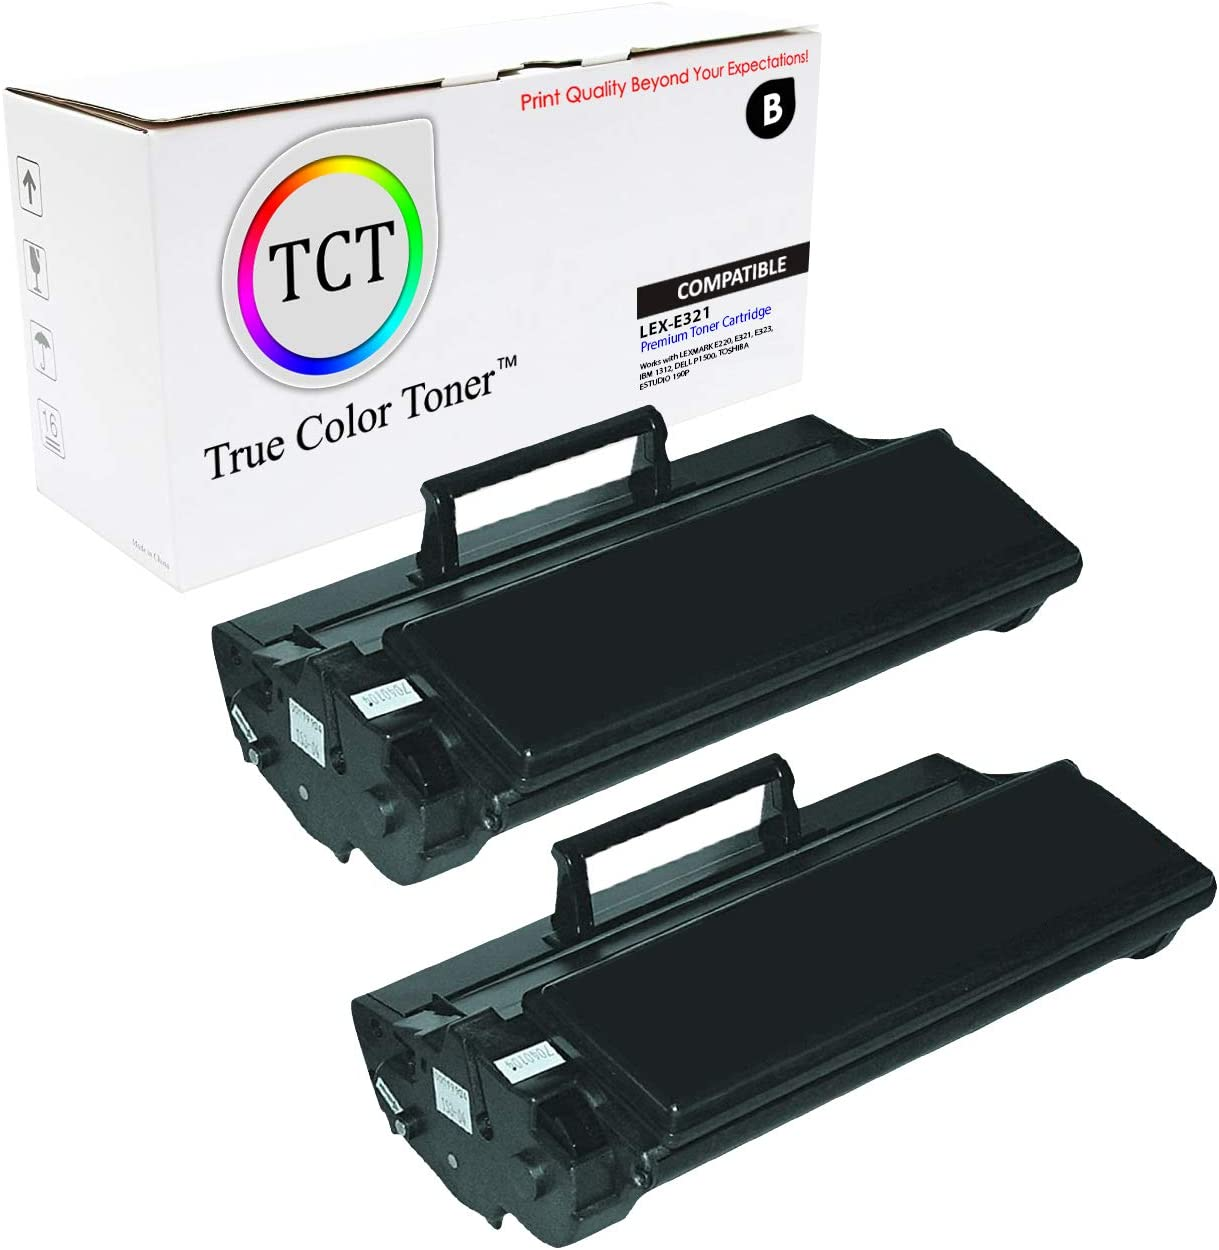 TCT Premium Compatible Toner Cartridge Replacement for Lexmark E321 12A7305 Black Works with Lexmark E220 E323, IBM 1312, Dell P1500, Toshia eStudio 190P Printers (6,000 Pages) - 2 Pack